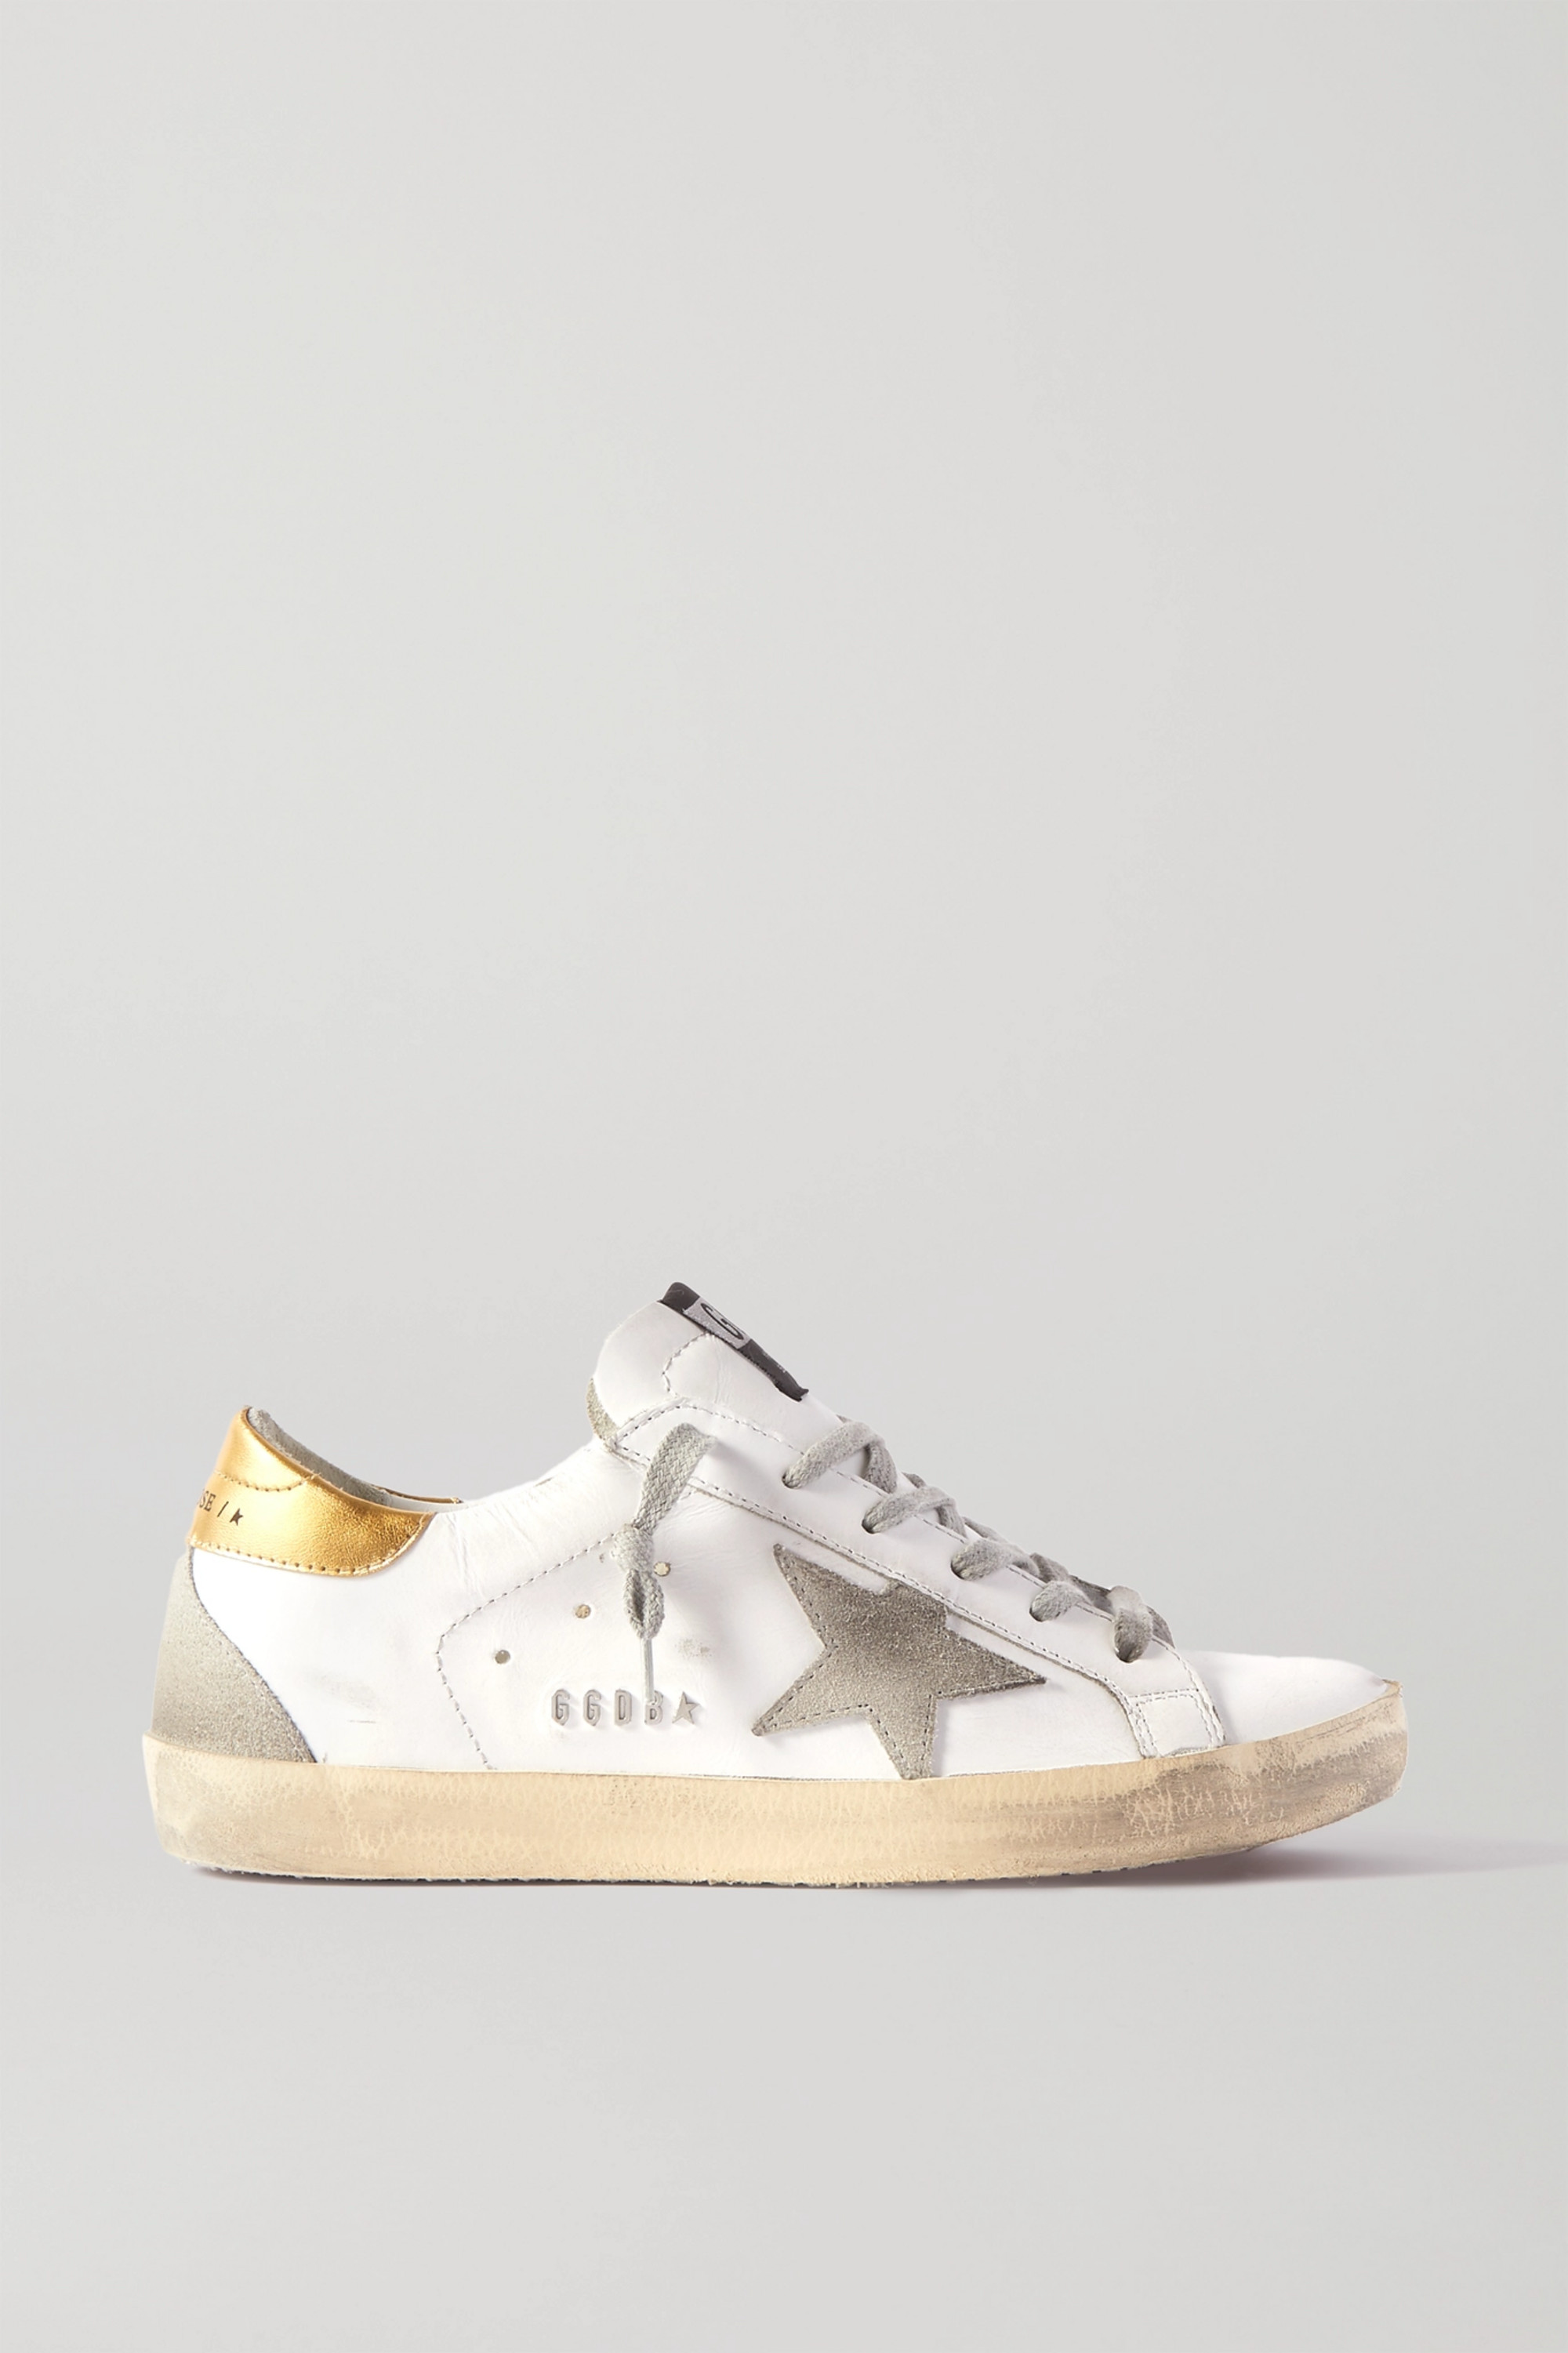 GOLDEN GOOSE Superstar distressed leather and suede sneakers